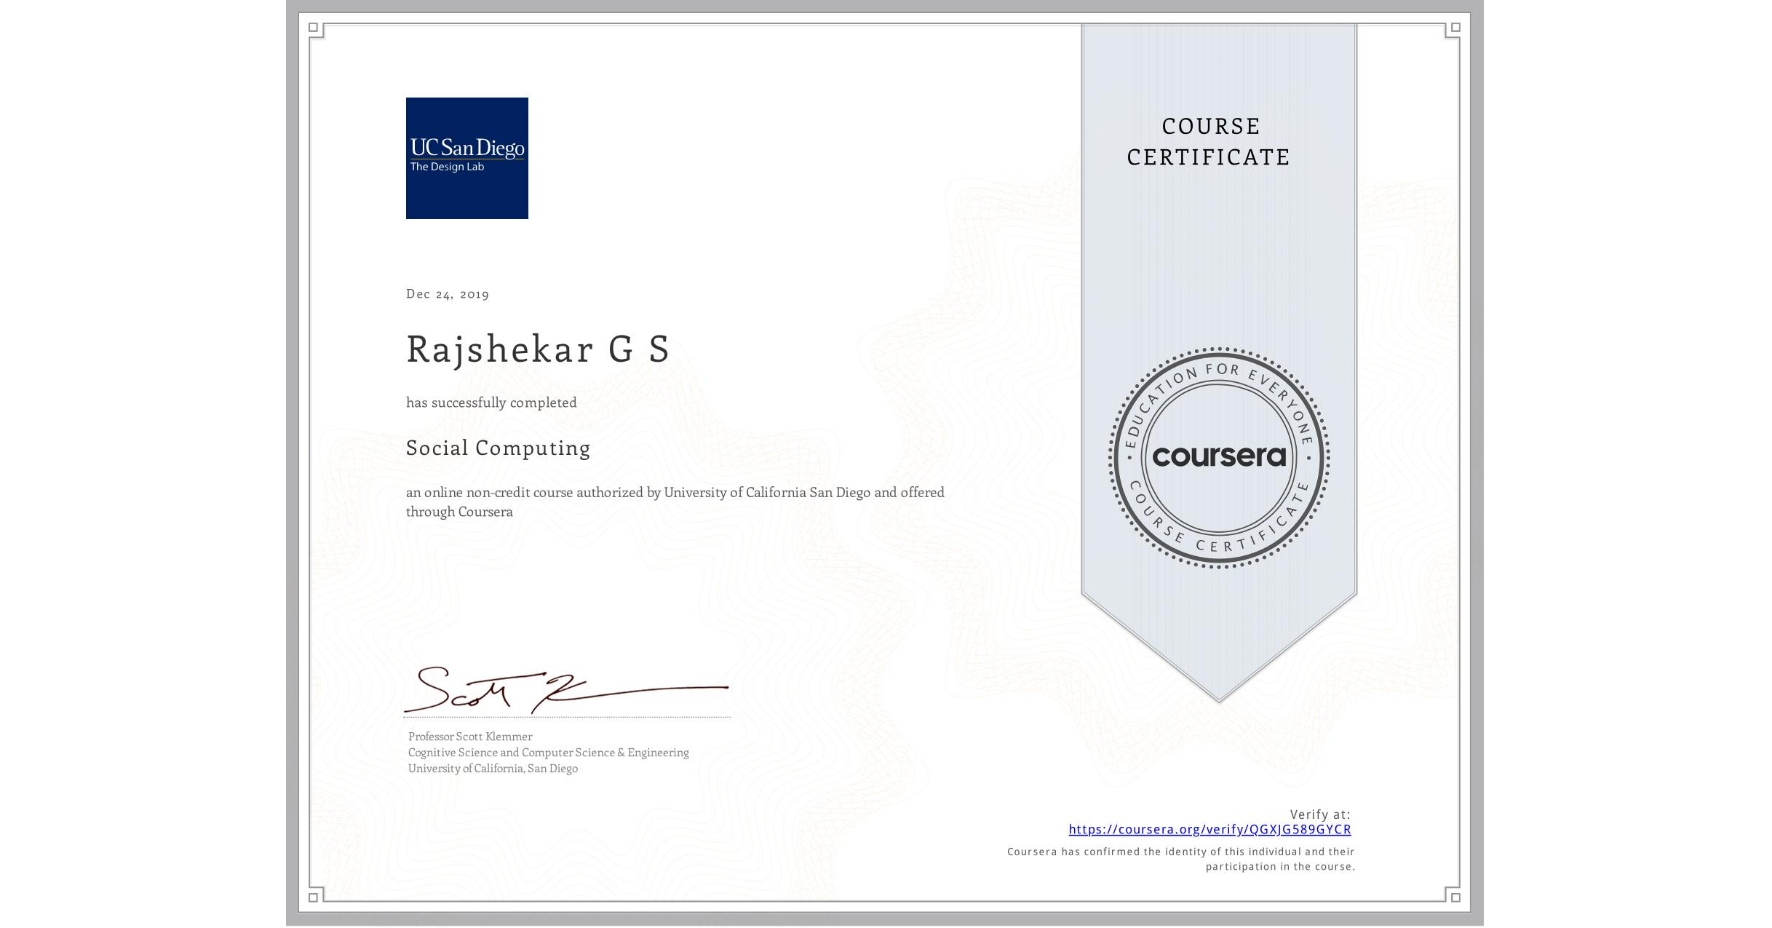 View certificate for Rajshekar G S, Social Computing, an online non-credit course authorized by University of California San Diego and offered through Coursera